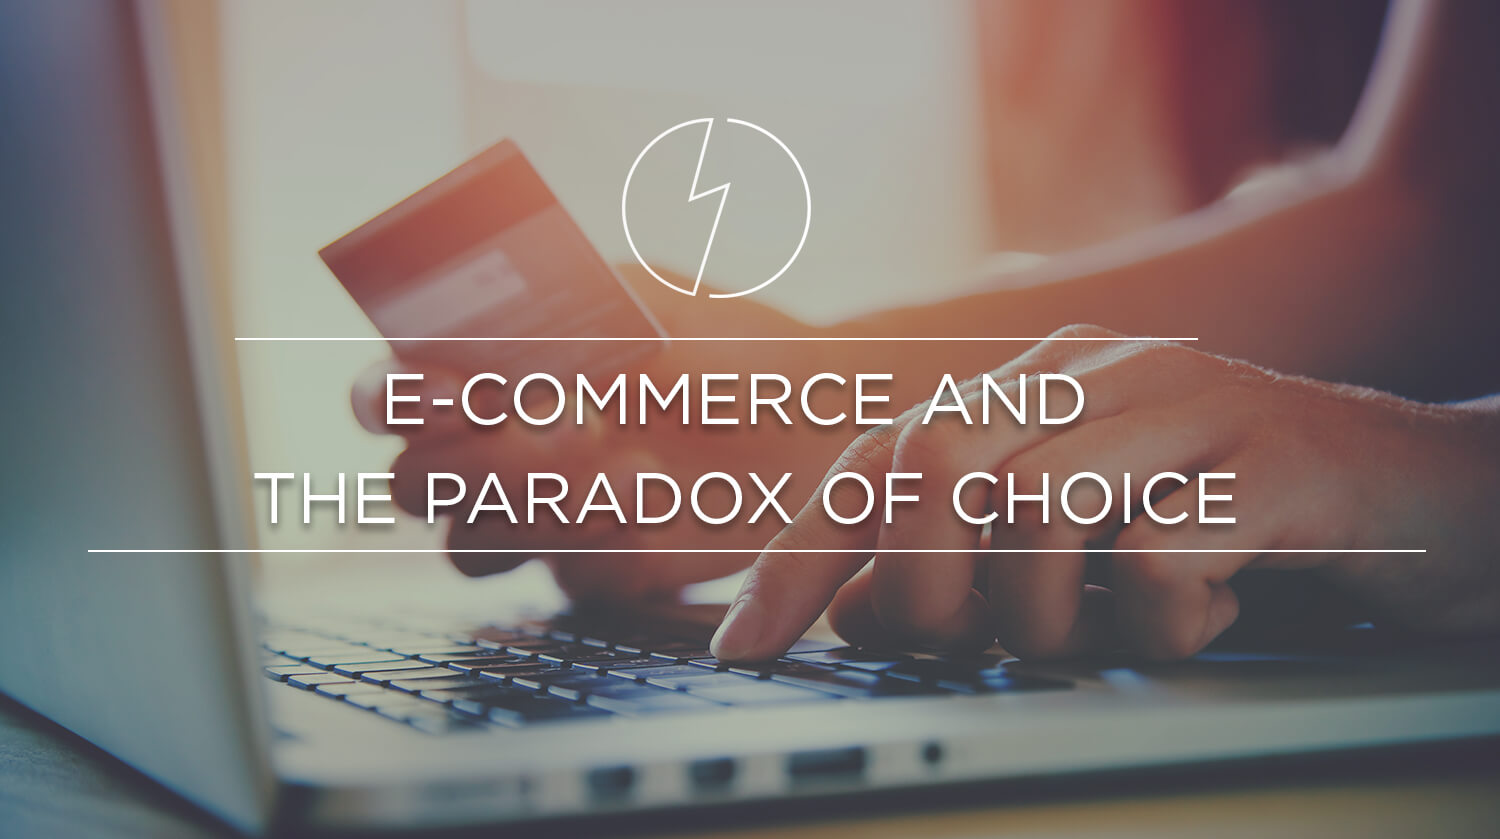 E-Commerce and the Paradox of Choice